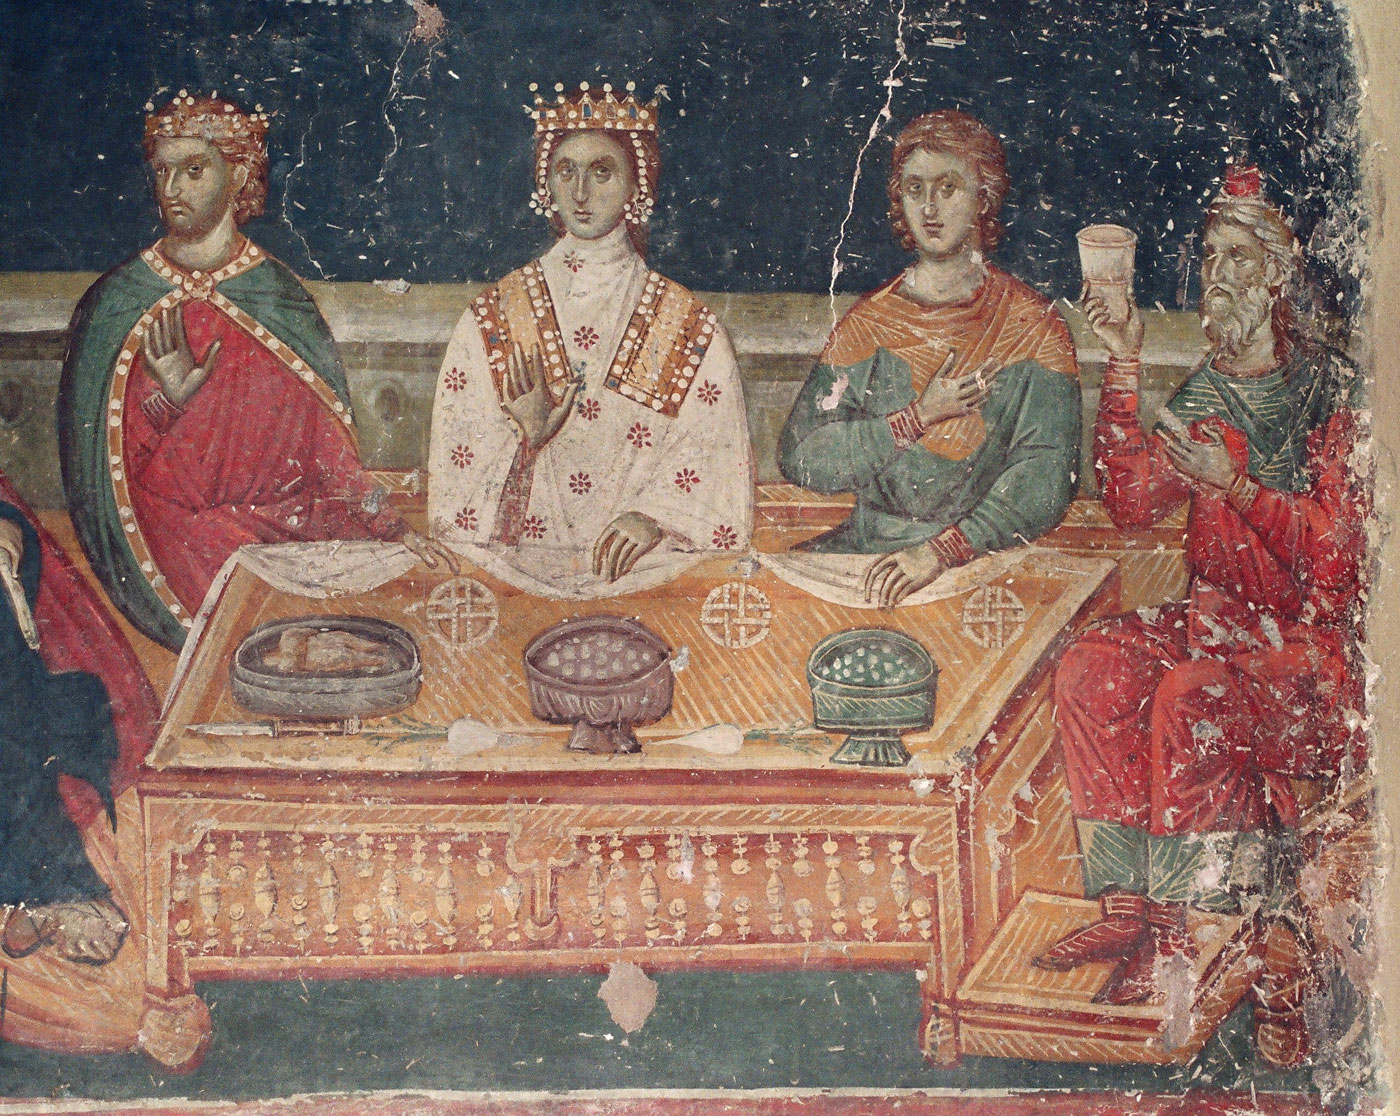 Scene from an icon of the Wedding at Cana